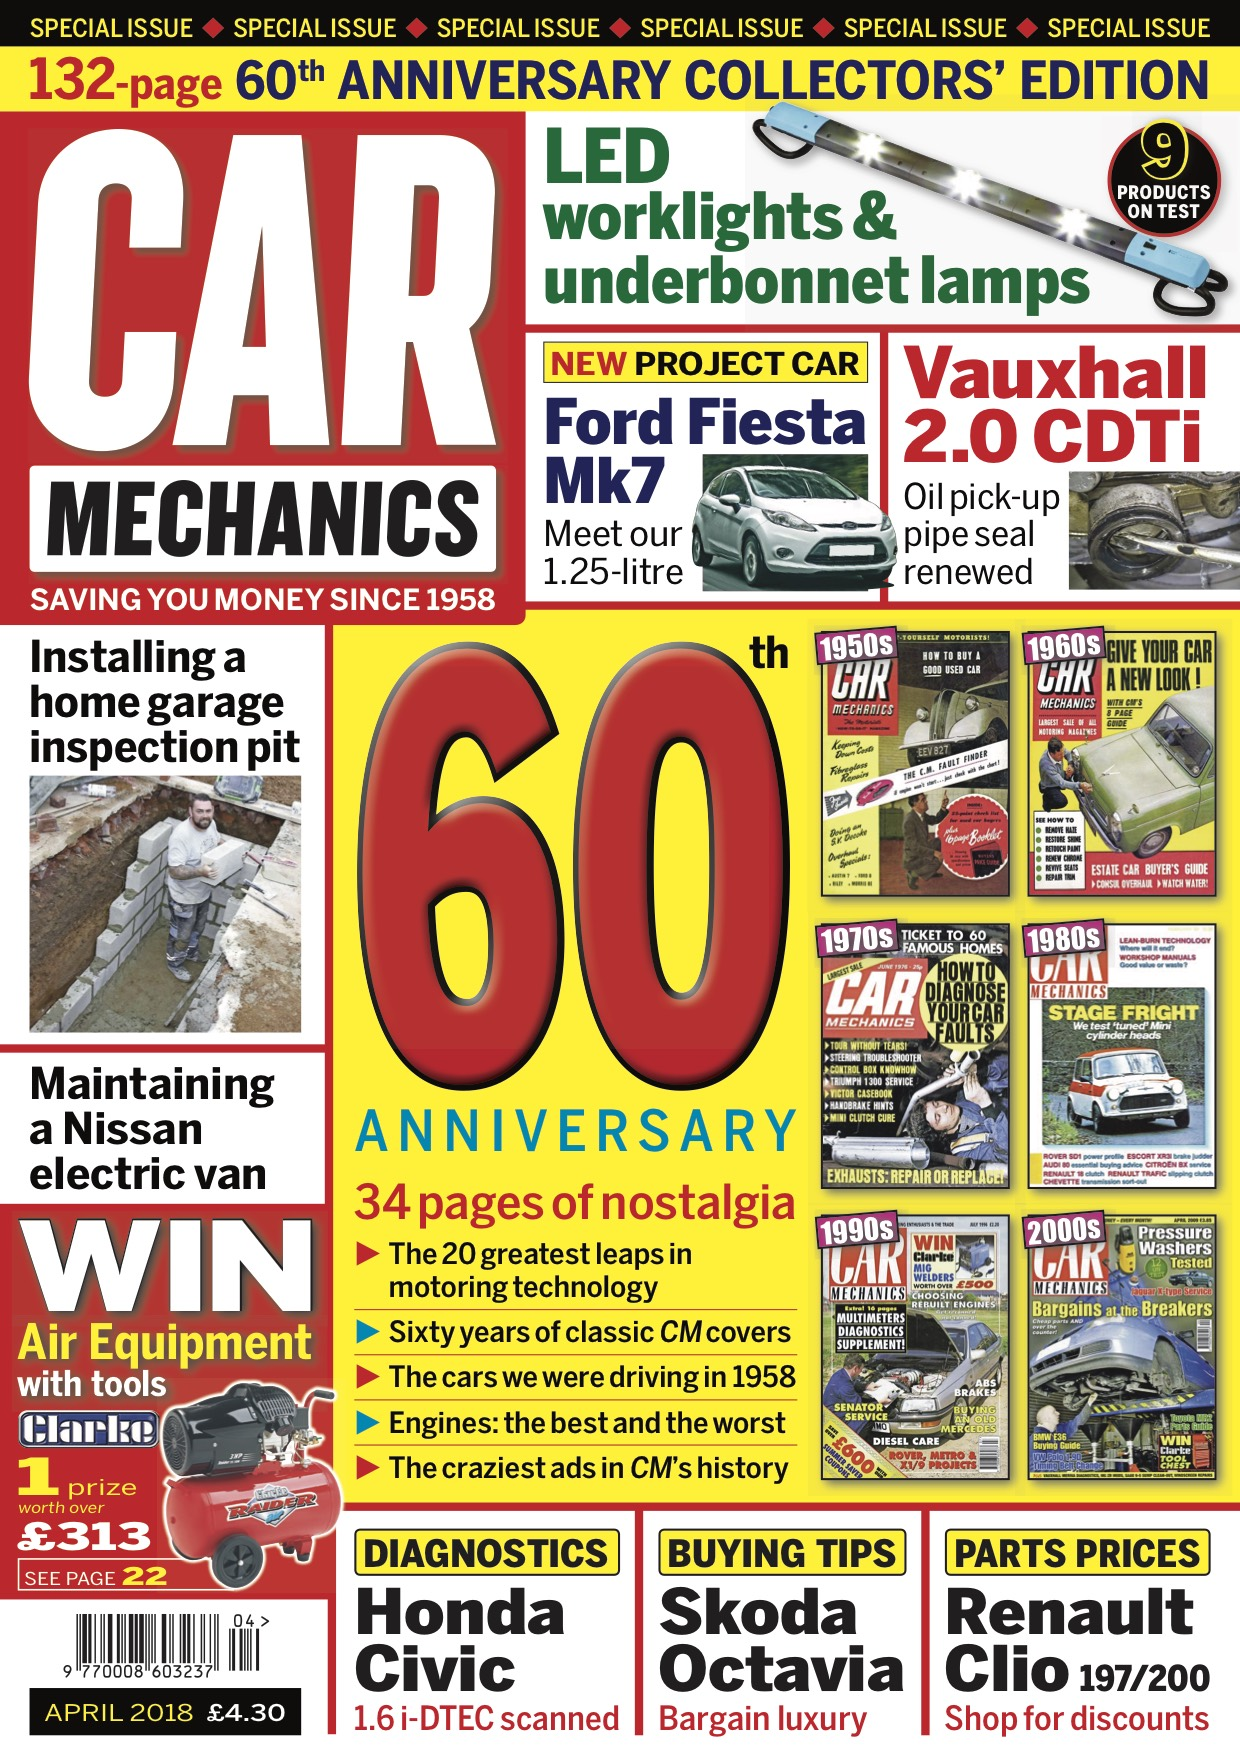 171bf943cf Kim Henson reports on one of the longest-running motoring magazines – going  strong after 60 years